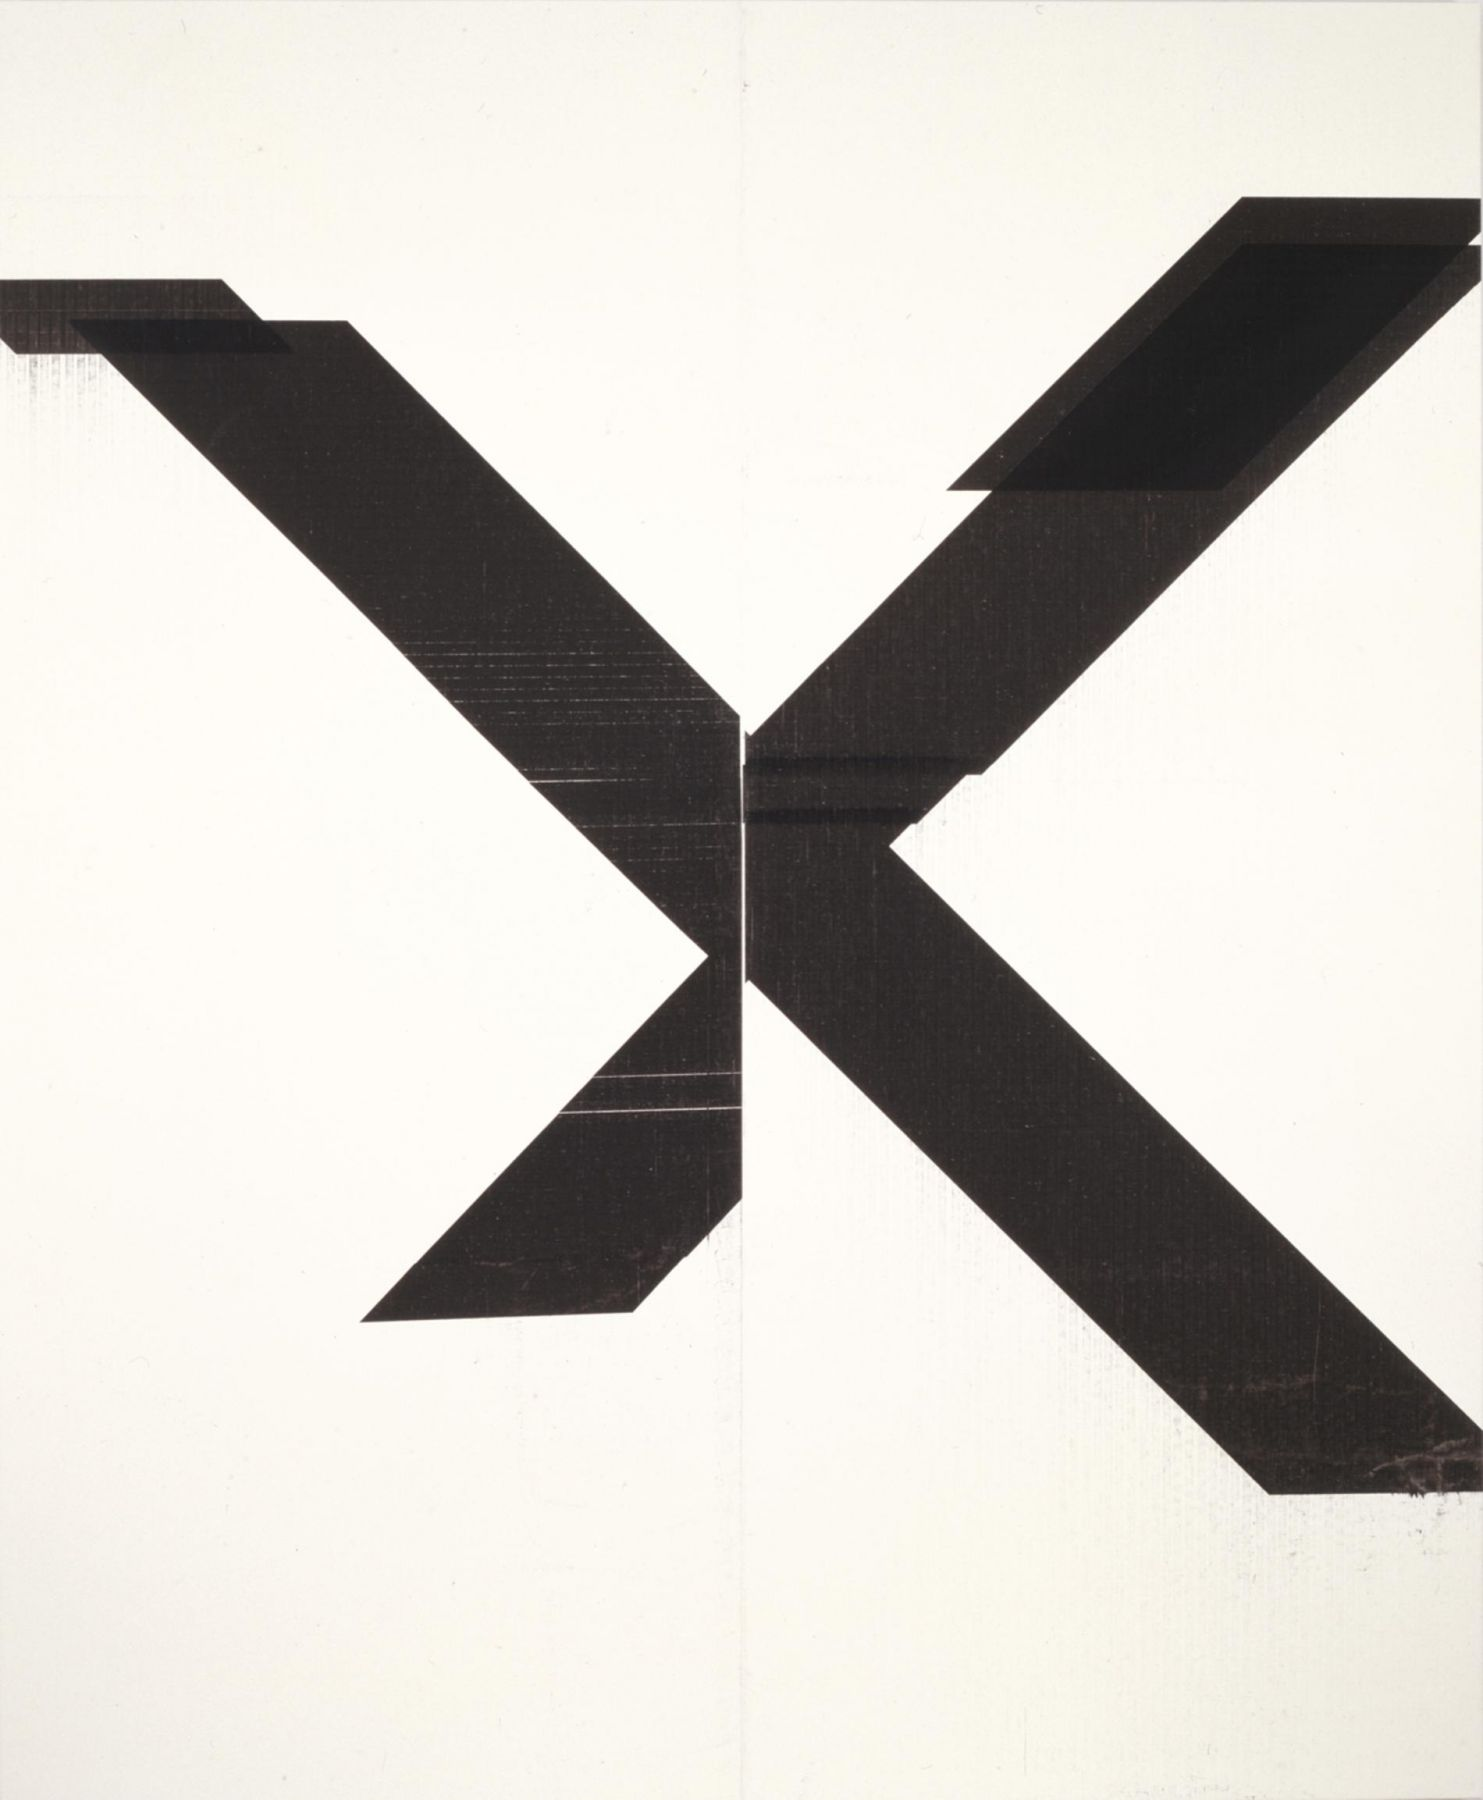 , WADE GUYTON Untitled, 2007 Epson UltraChrome inkjet on linen 84 x 69 in. (213.4 x 175.3 cm) Image courtesy of Friedrich Petzel Gallery, New York